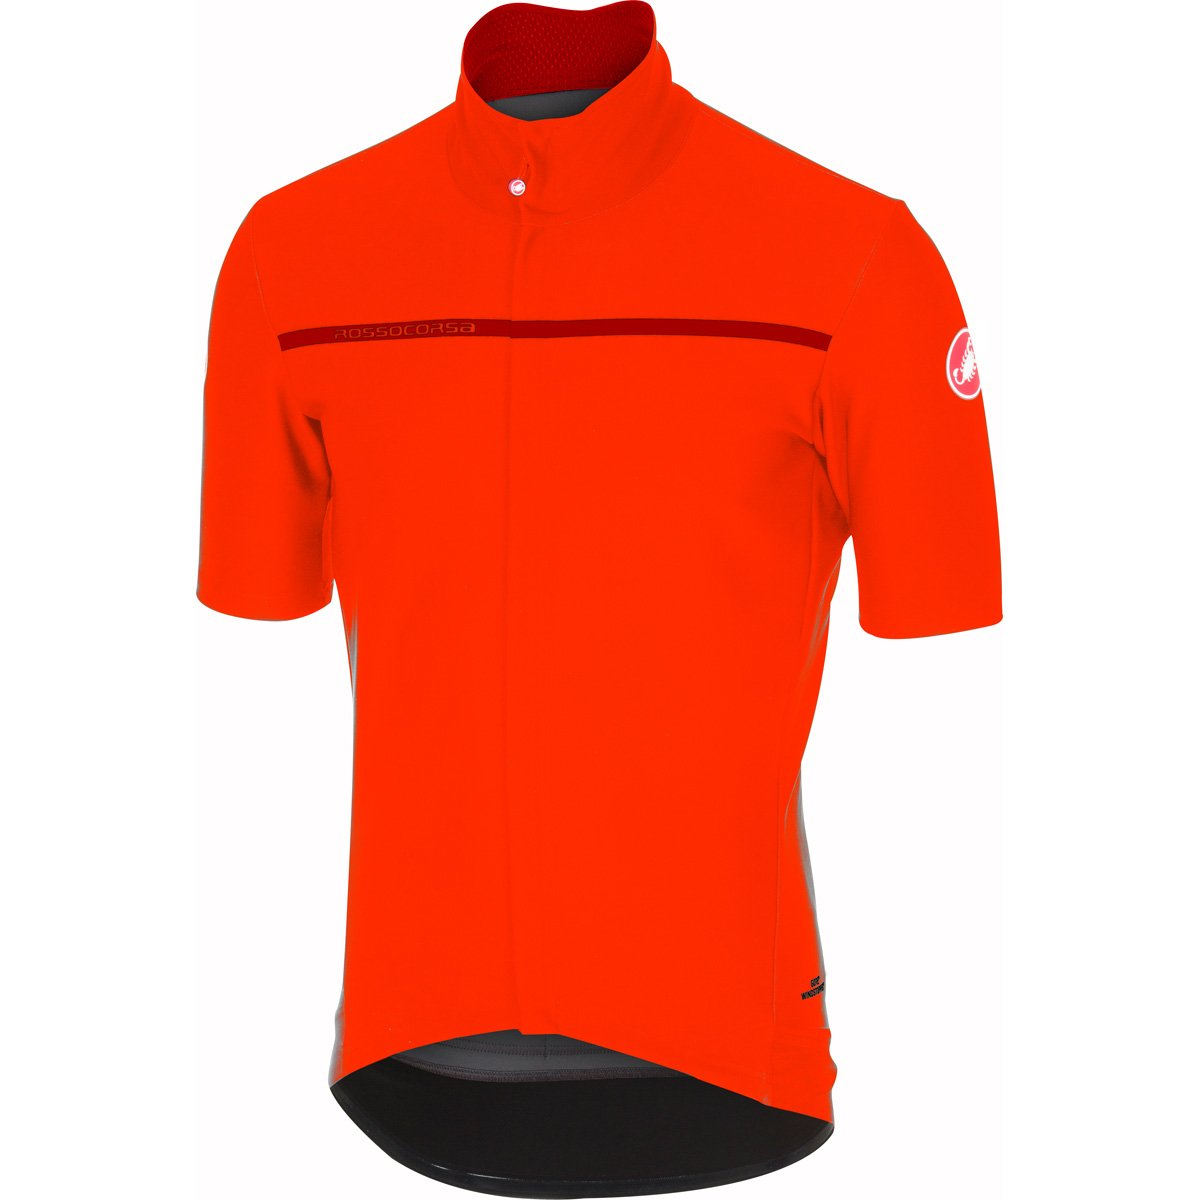 Mens Orange Castelli Gabba 3 Short-Sleeve Jersey 3XL